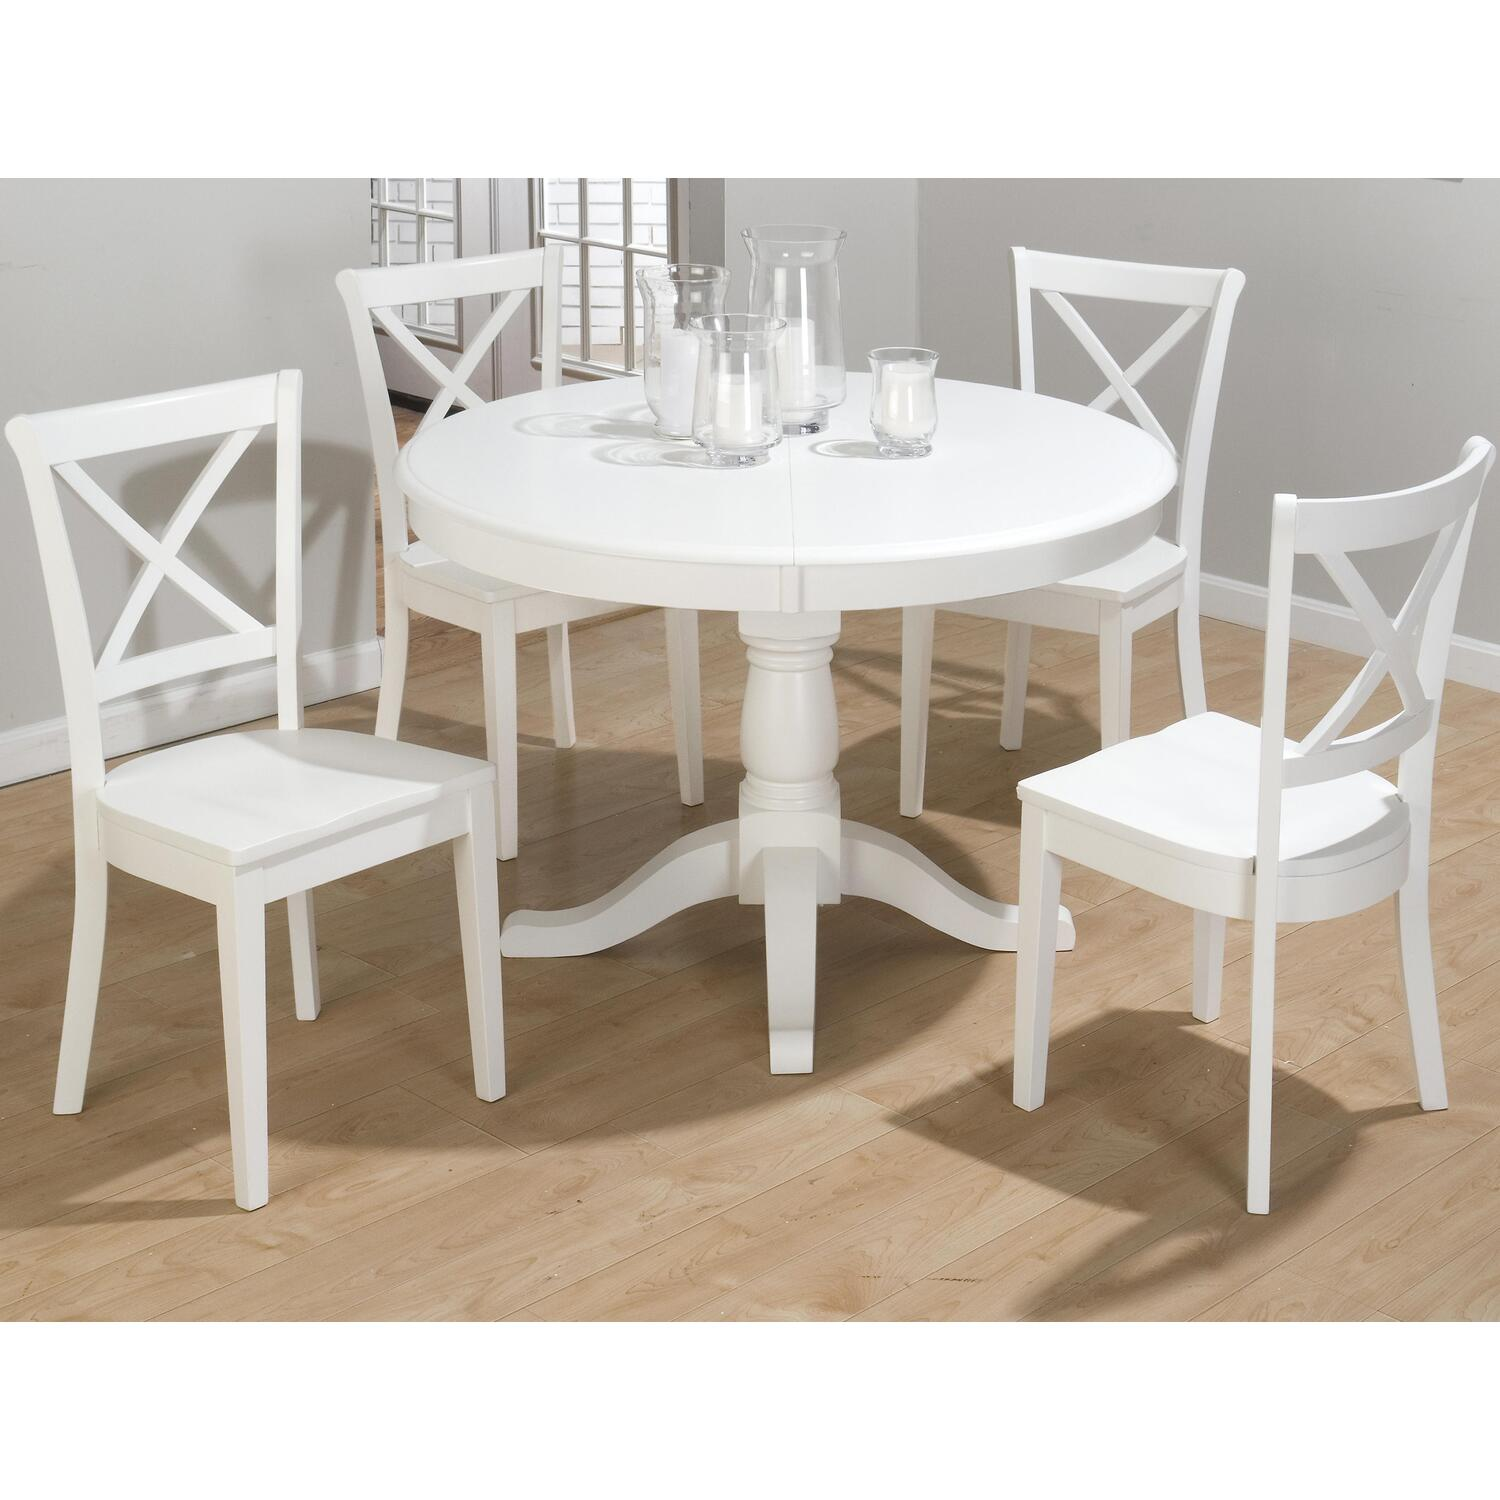 Jofran Casper White Finished 5 PC Dining Set By OJ Commerce 662 5PC